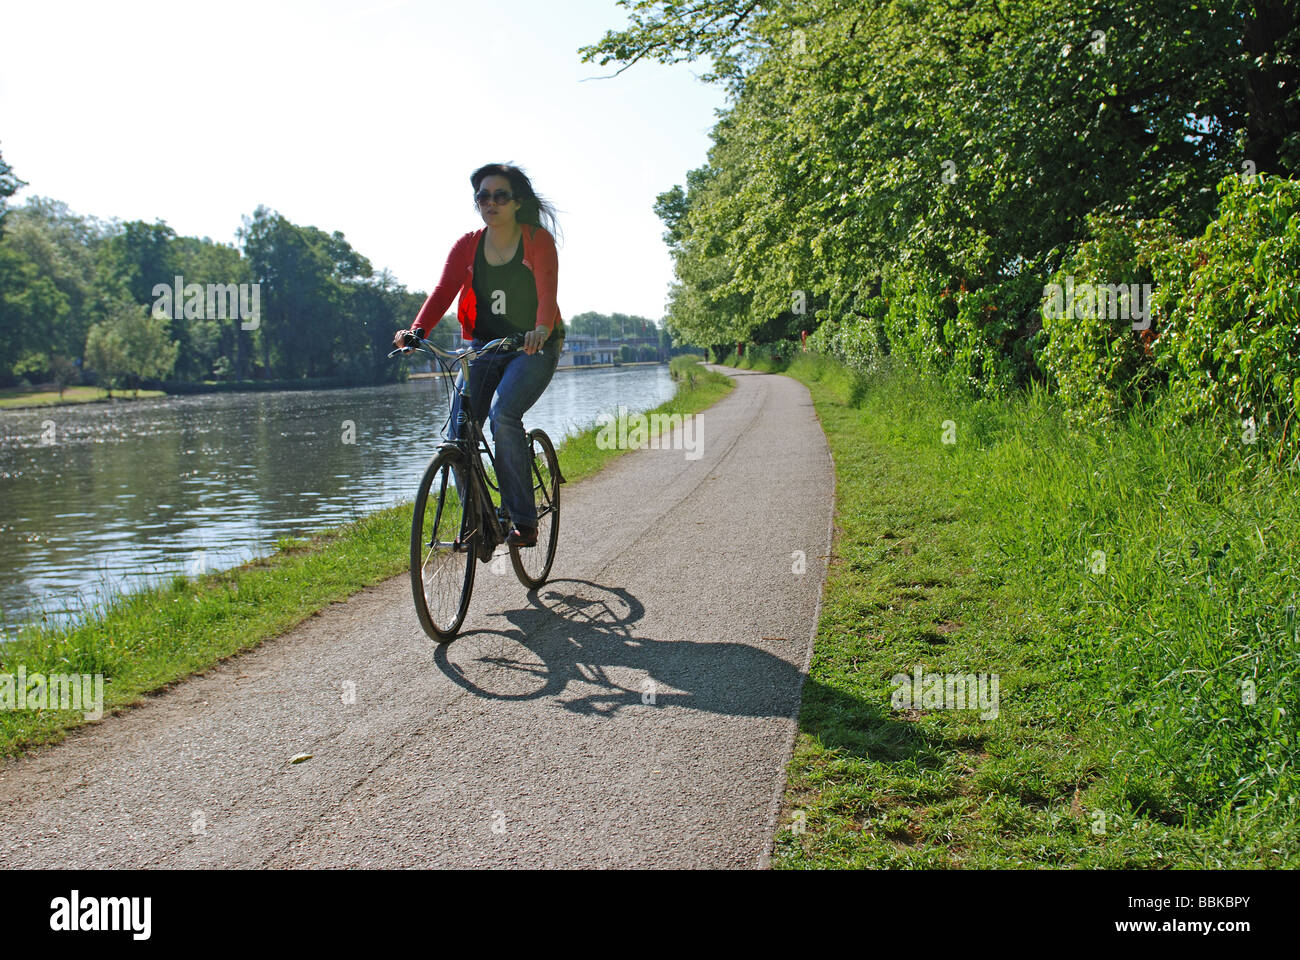 Cyclist on River Thames towpath, Oxford, Oxfordshire, England, UK - Stock Image